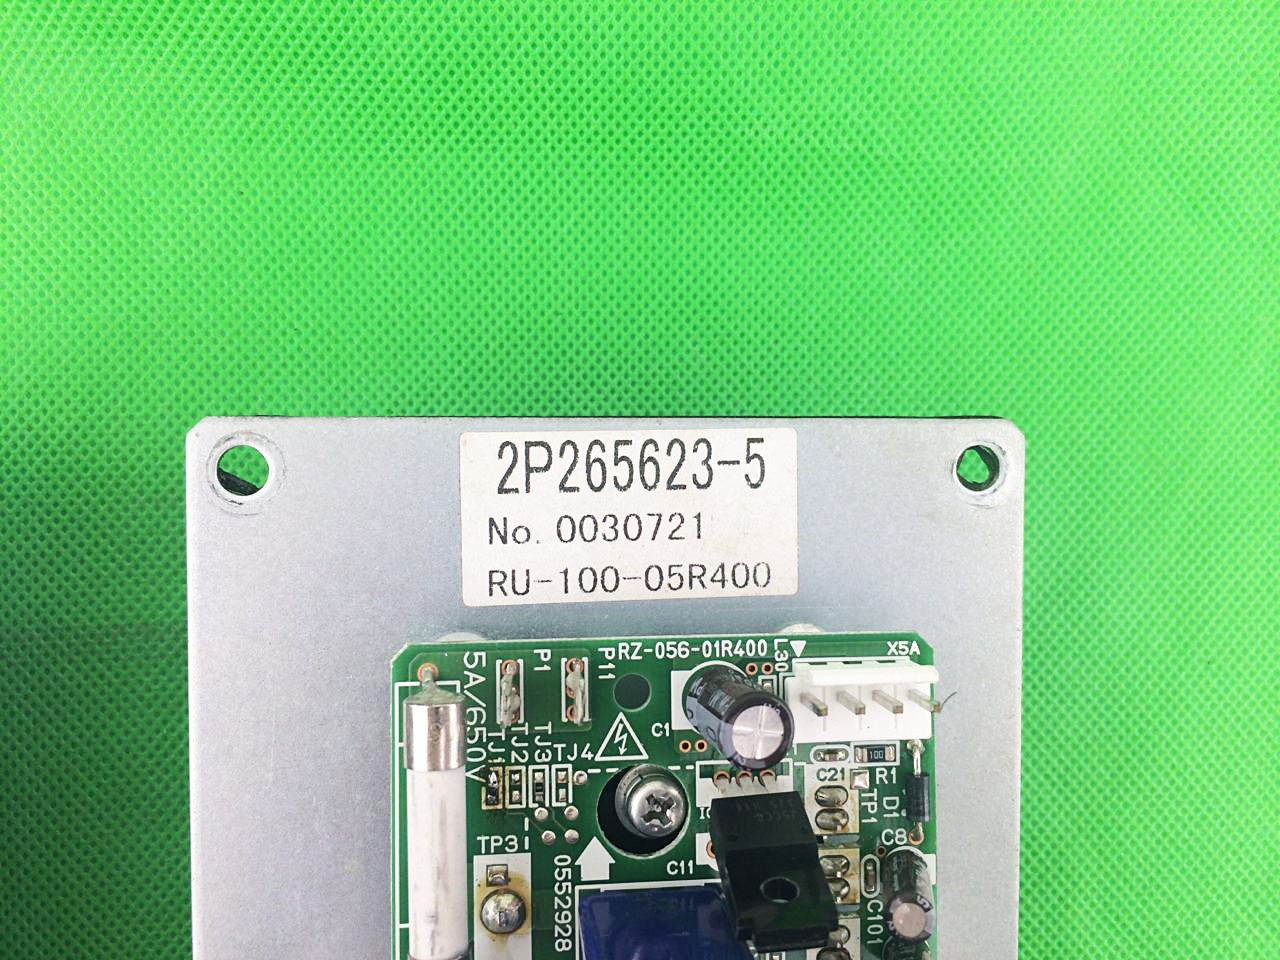 Daikin Air conditioner frequency conversion module plate PC0904-52P265623-6 Daikin V3 fan frequency conversion board